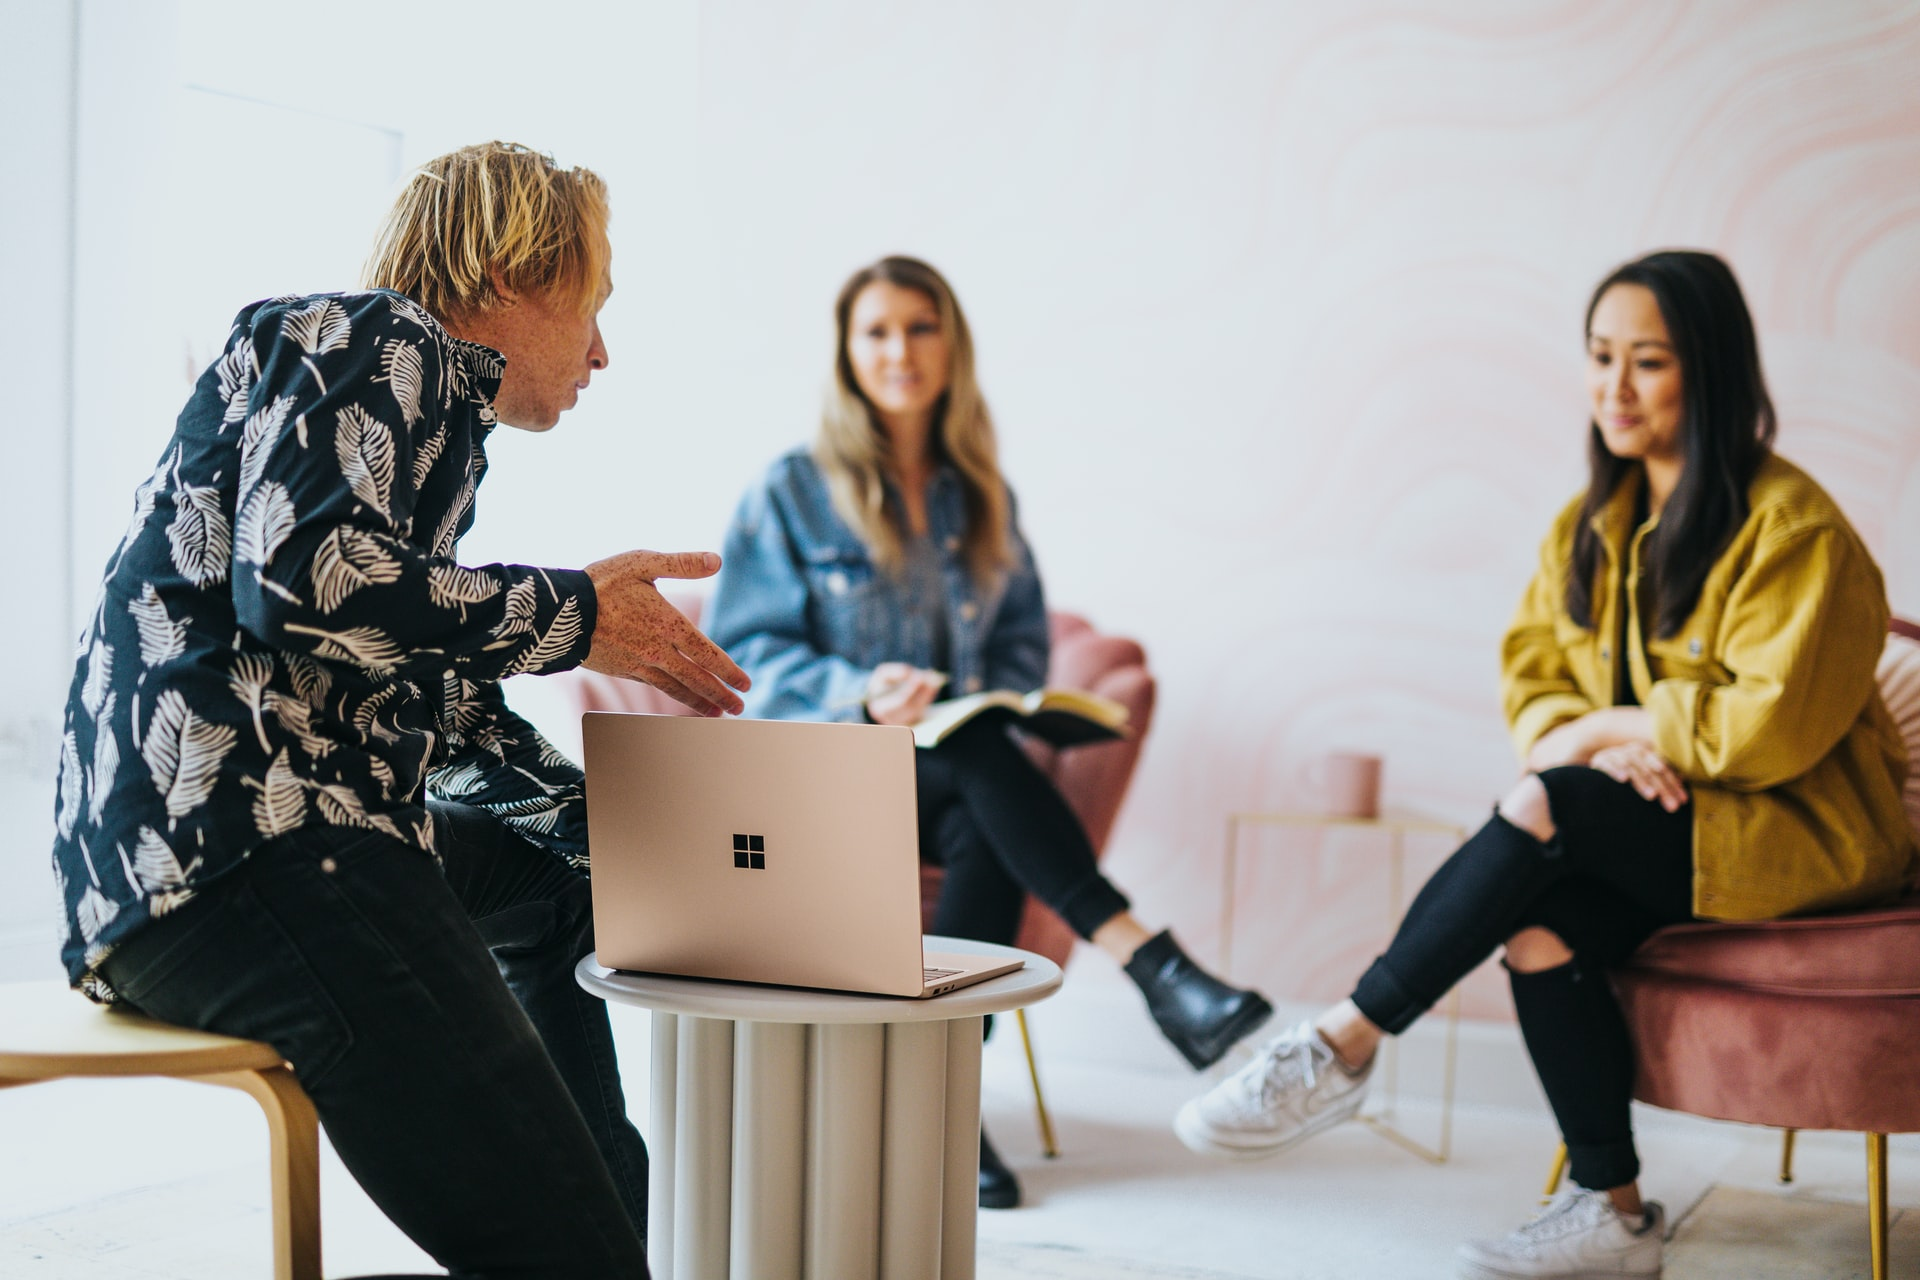 A man and two women discuss ideas during a business meeting.